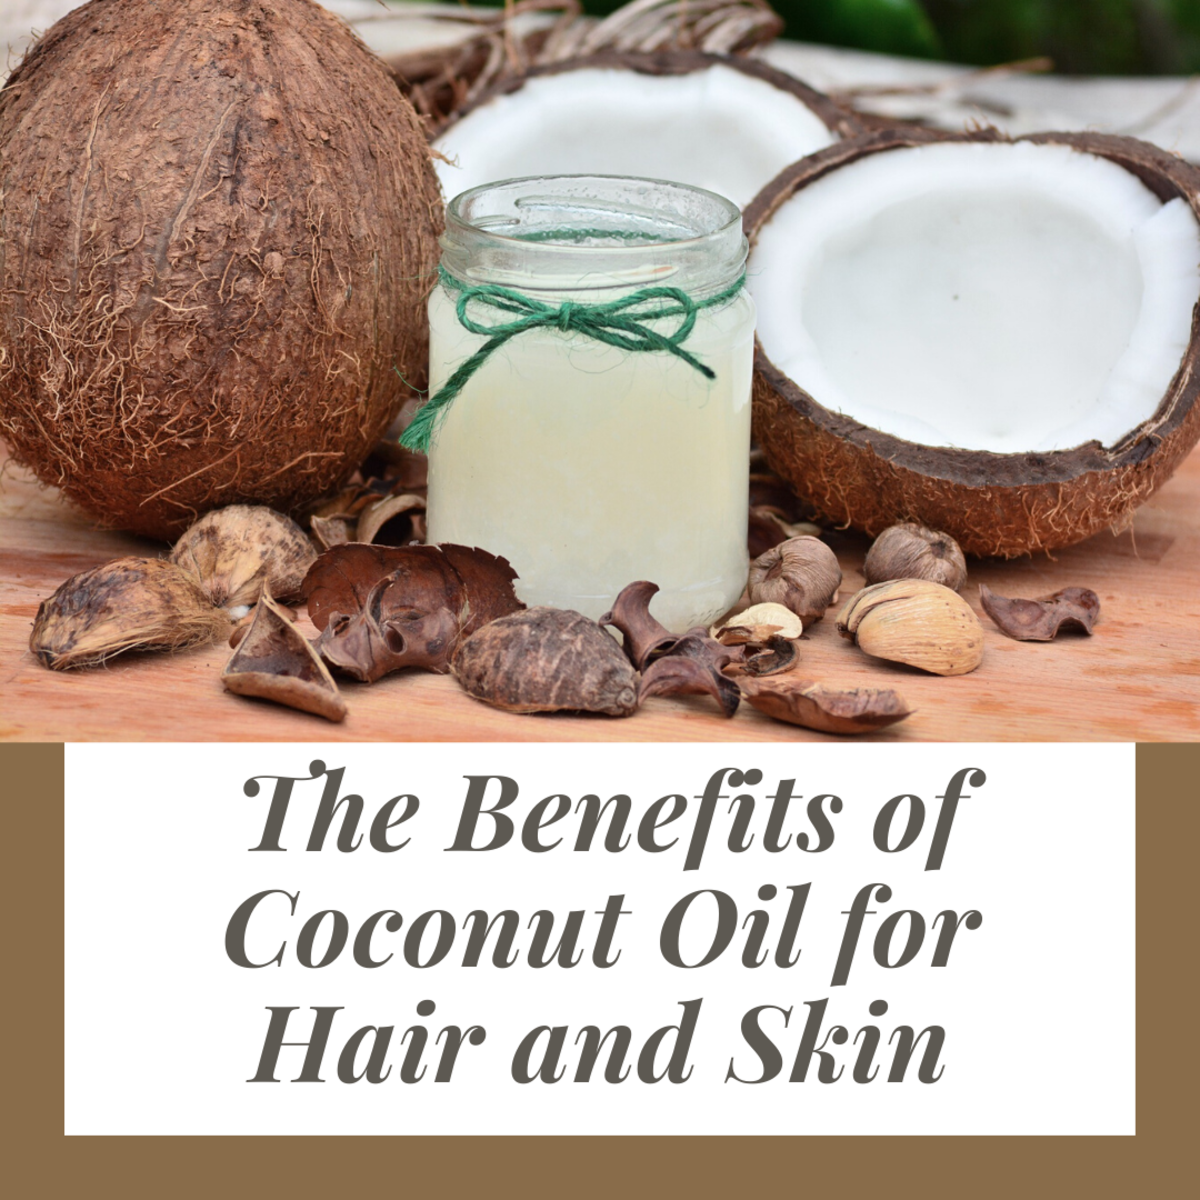 Aside from a host of benefits when consumed internally, coconut oil is also one of the very best moisturizers for your skin and hair.